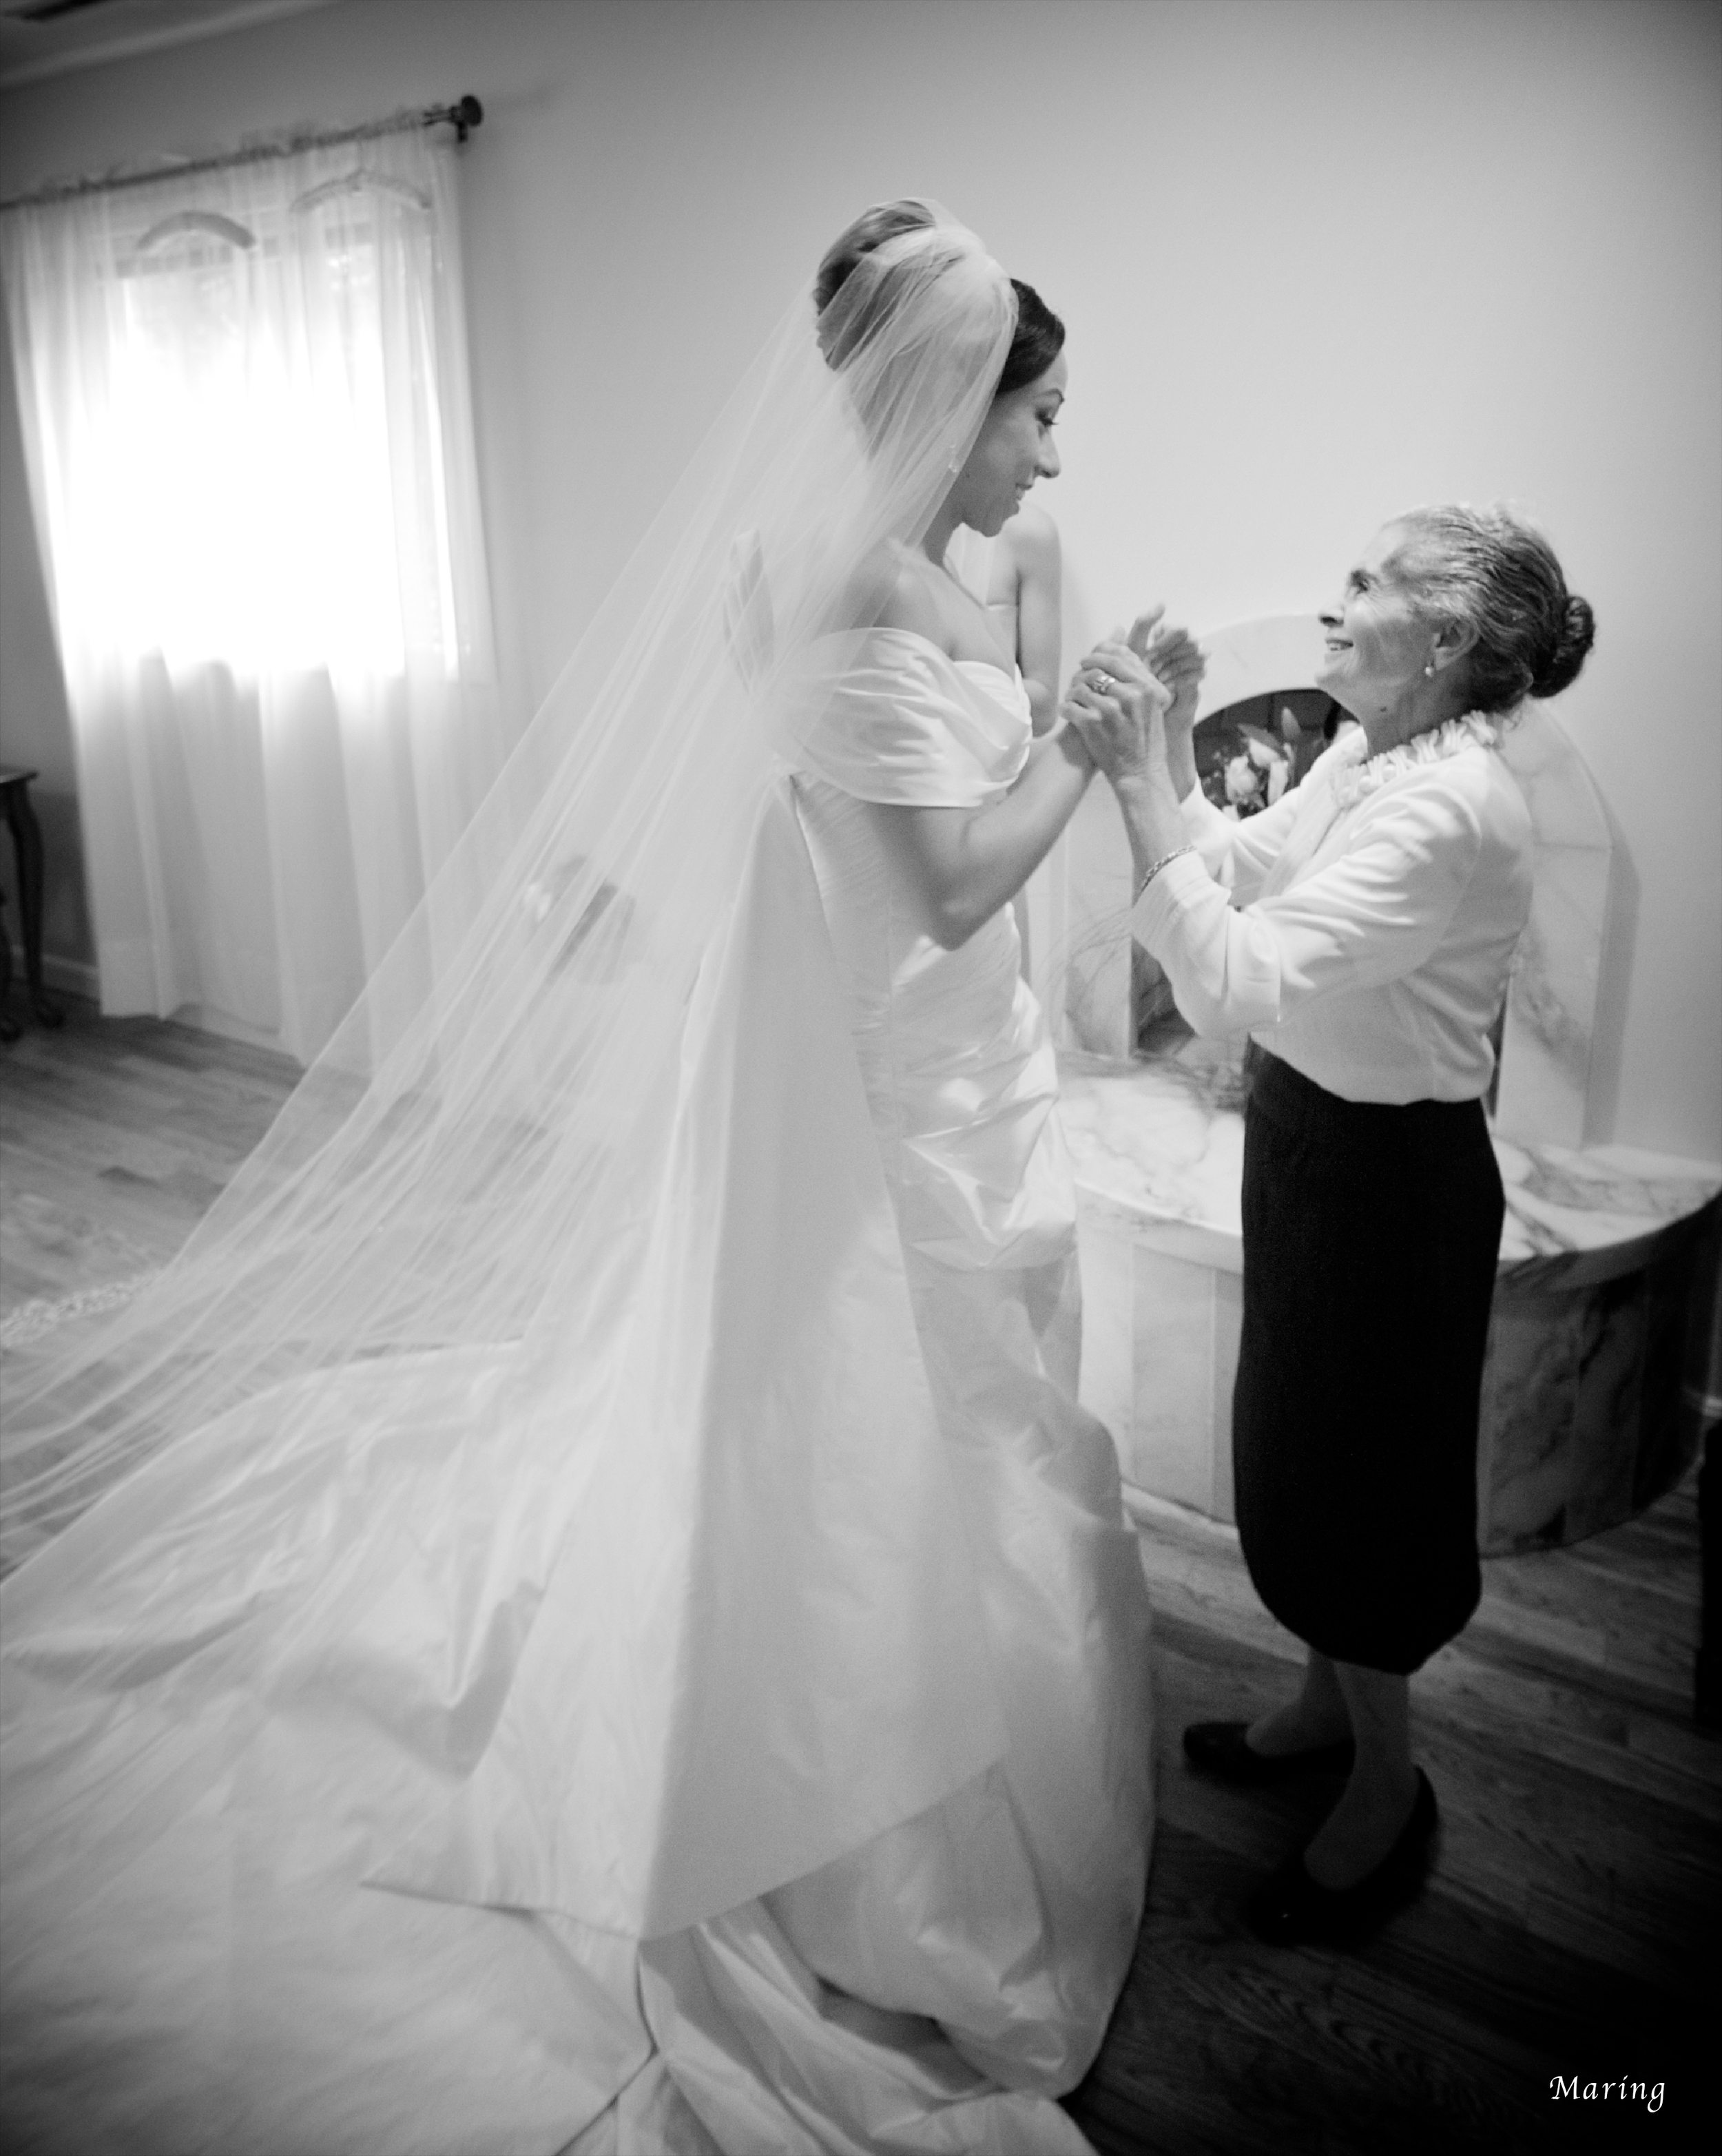 The grandmother of the bride shares a special moment with the bride after seeing her in the wedding dress for the first time. Moments like this only happen once in a lifetime, which is why it is so important to hire a photographer with a gifted eye for capturing meaningful moments.